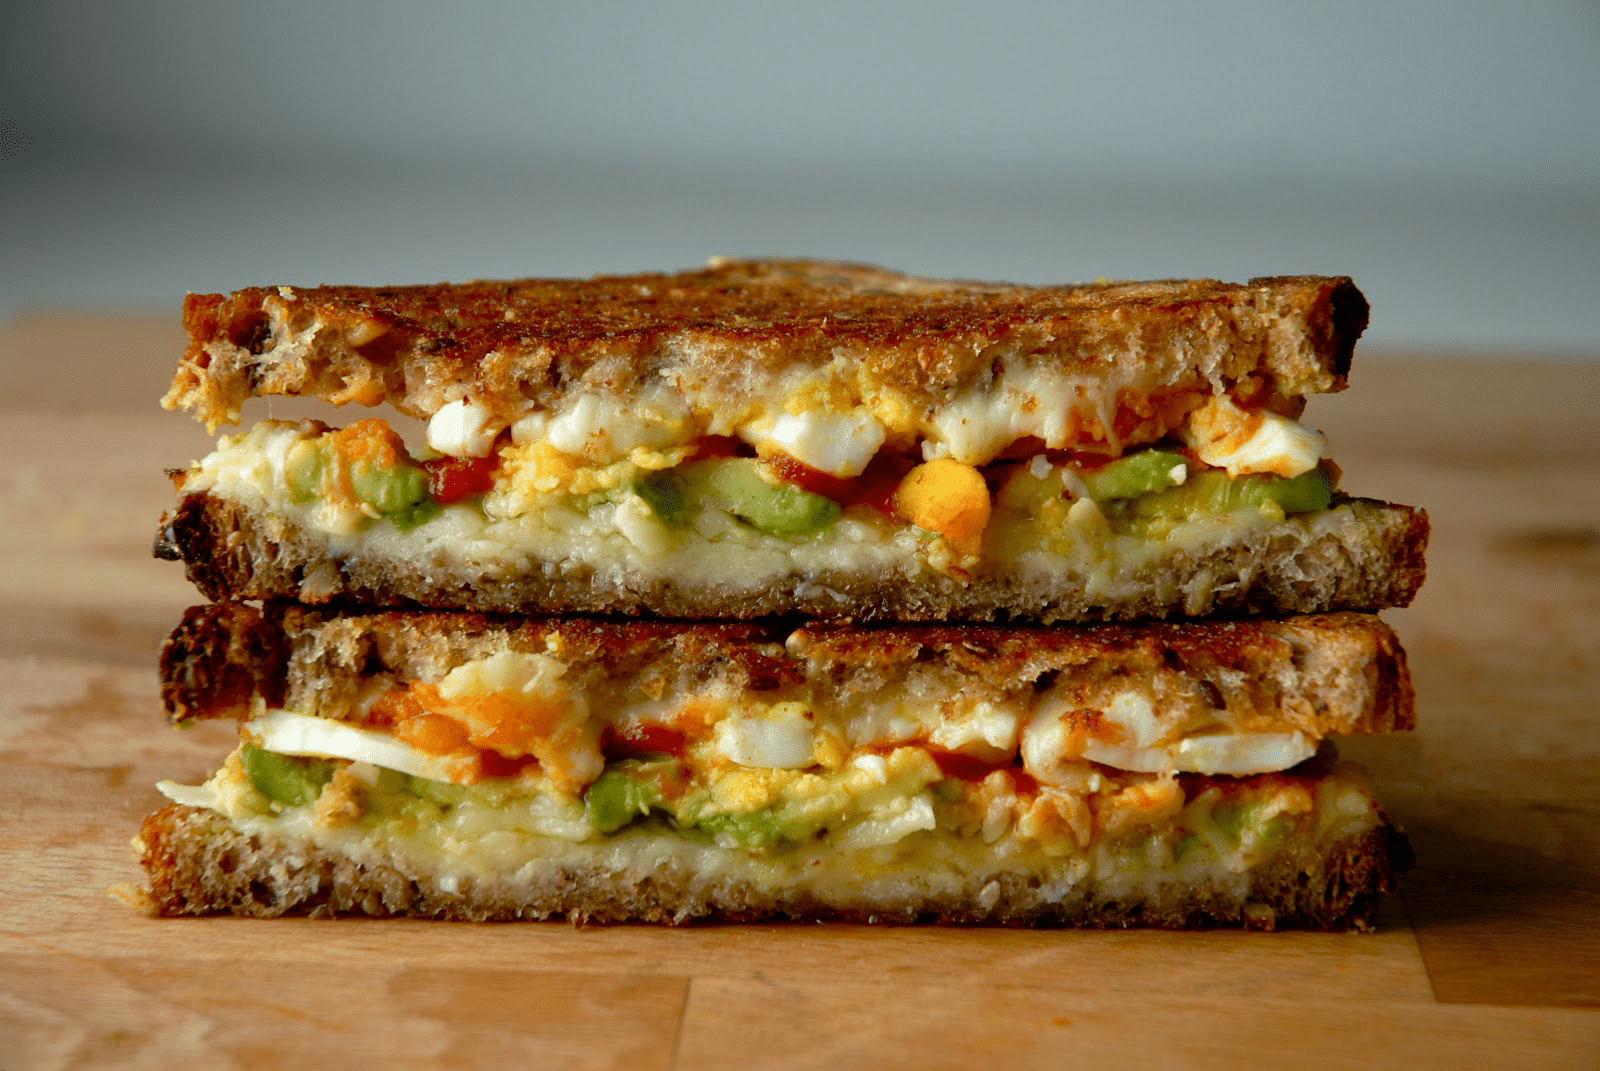 Spice Up Your Breakfast With This Sriracha and Avocado Grilled Cheese